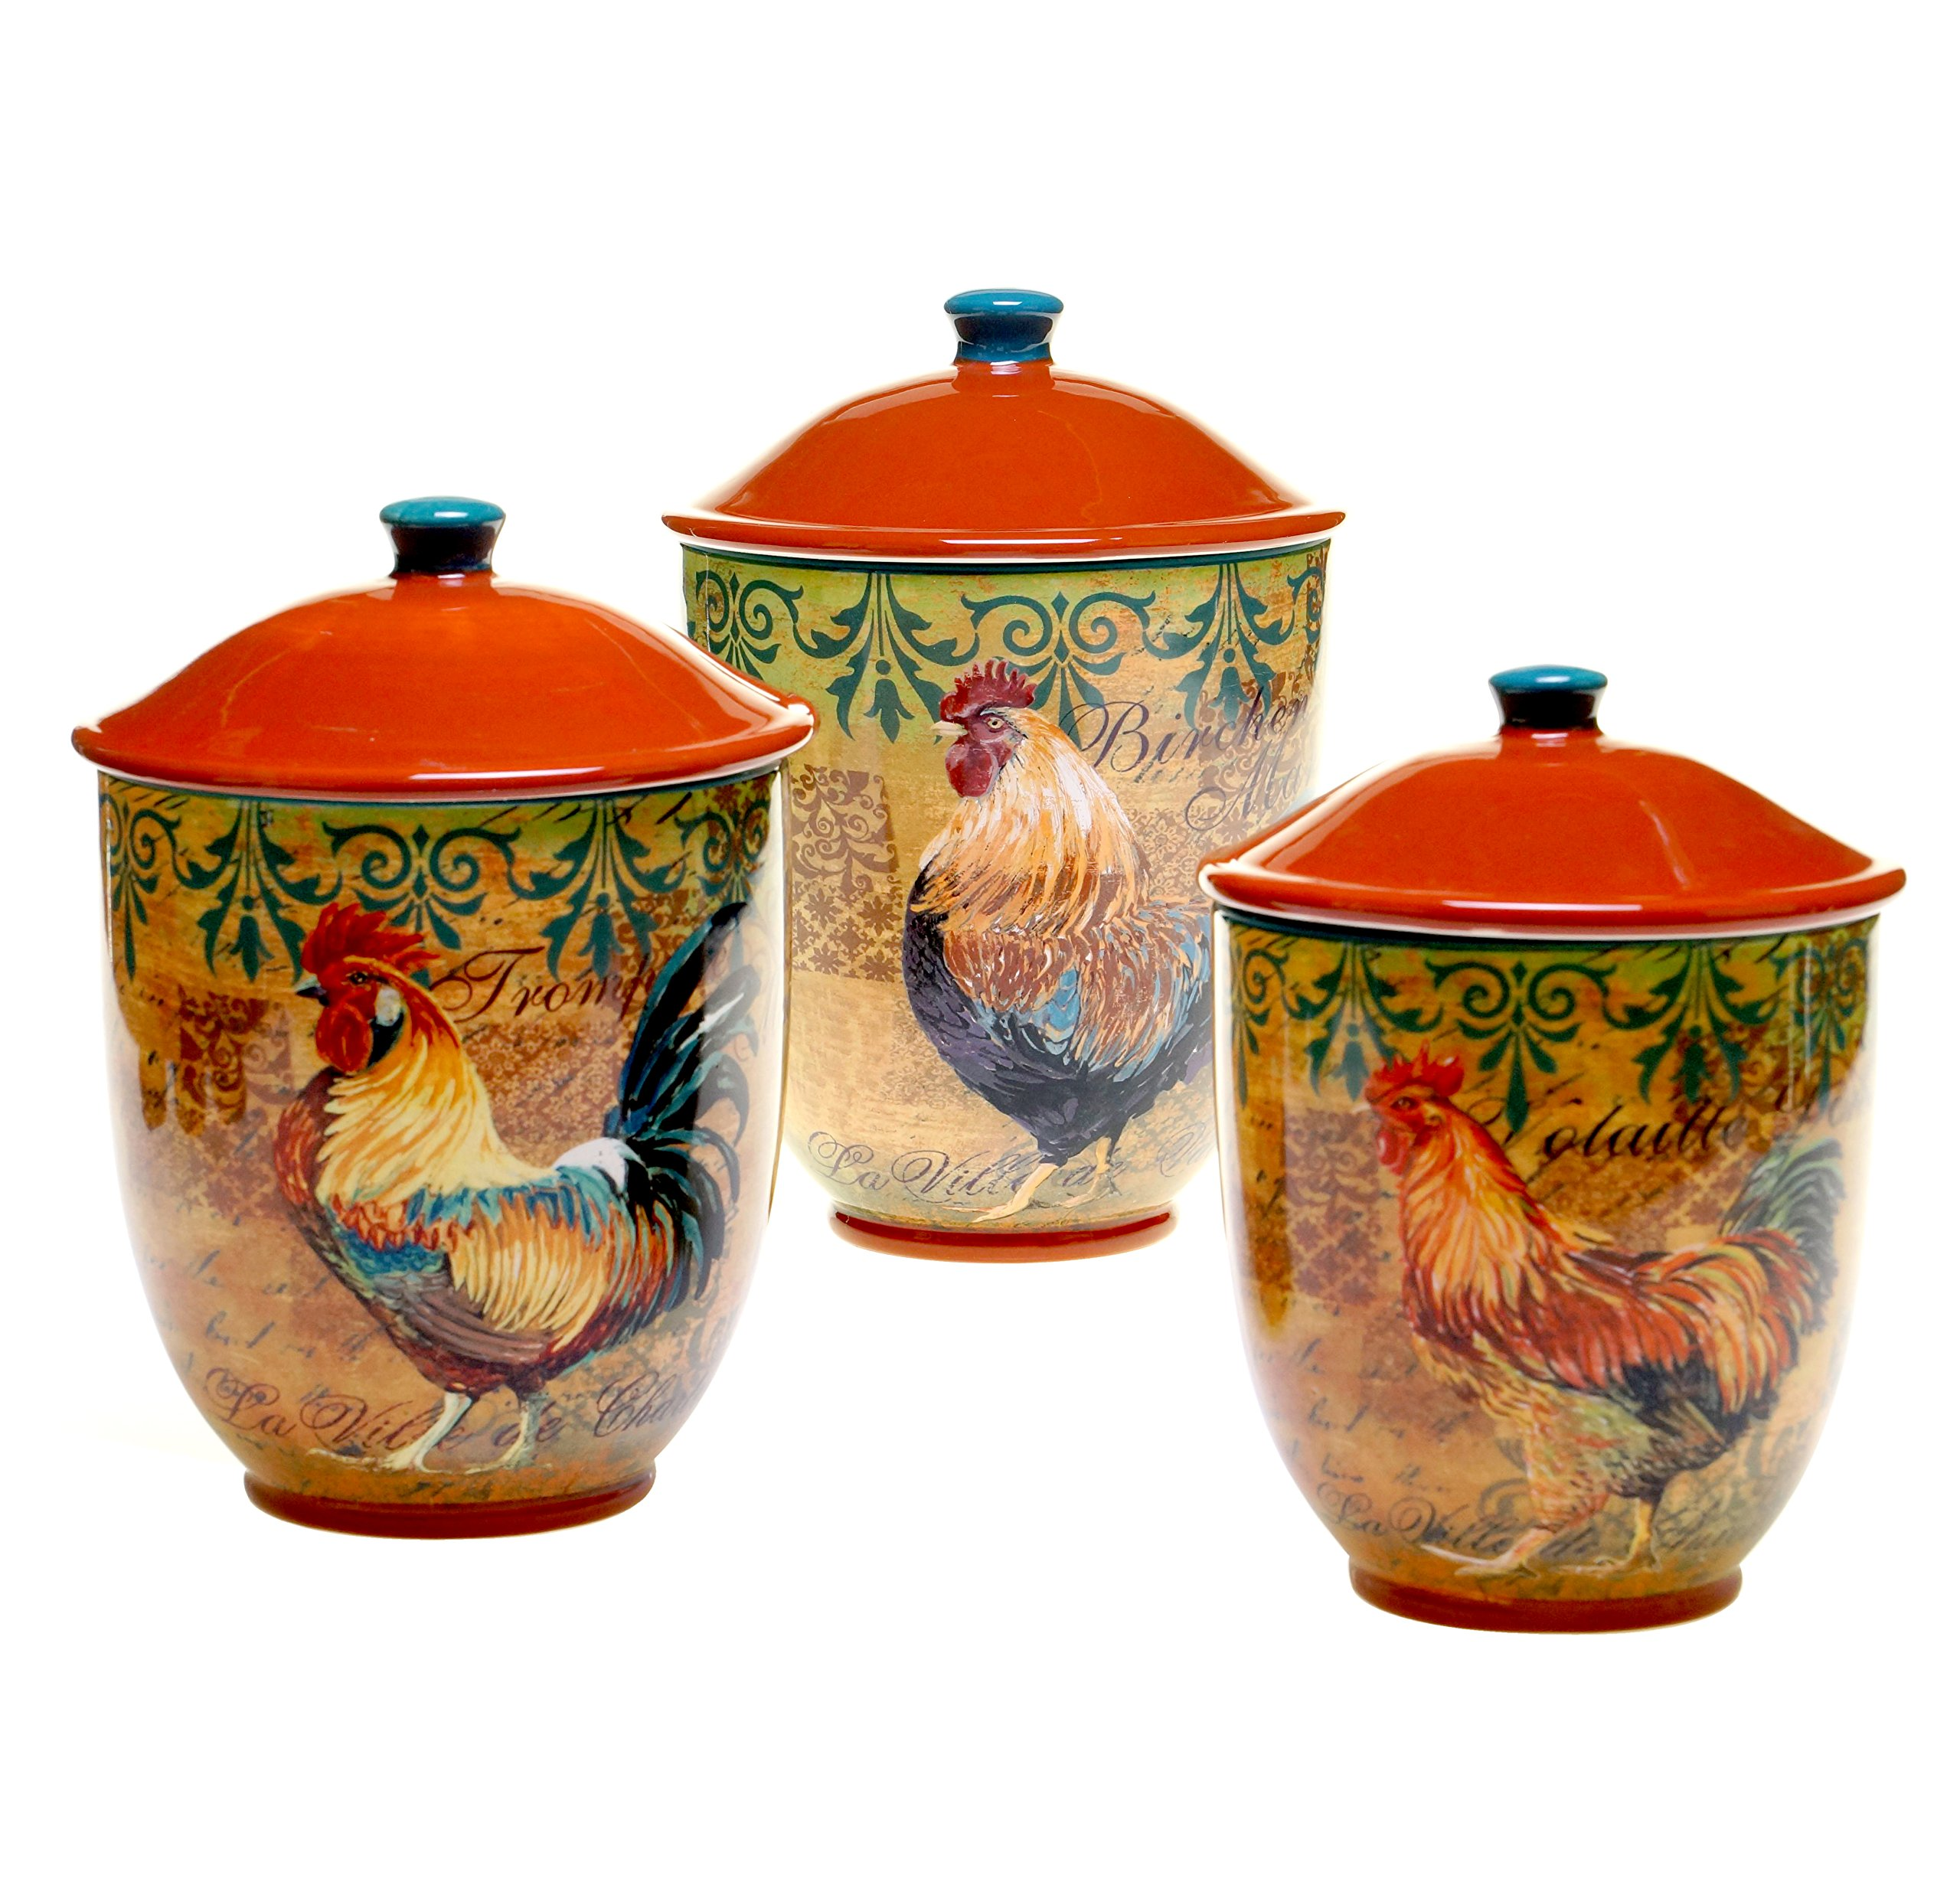 Certified International 3-Piece Rustic Rooster Canister Set, Multicolor by Certified International (Image #1)